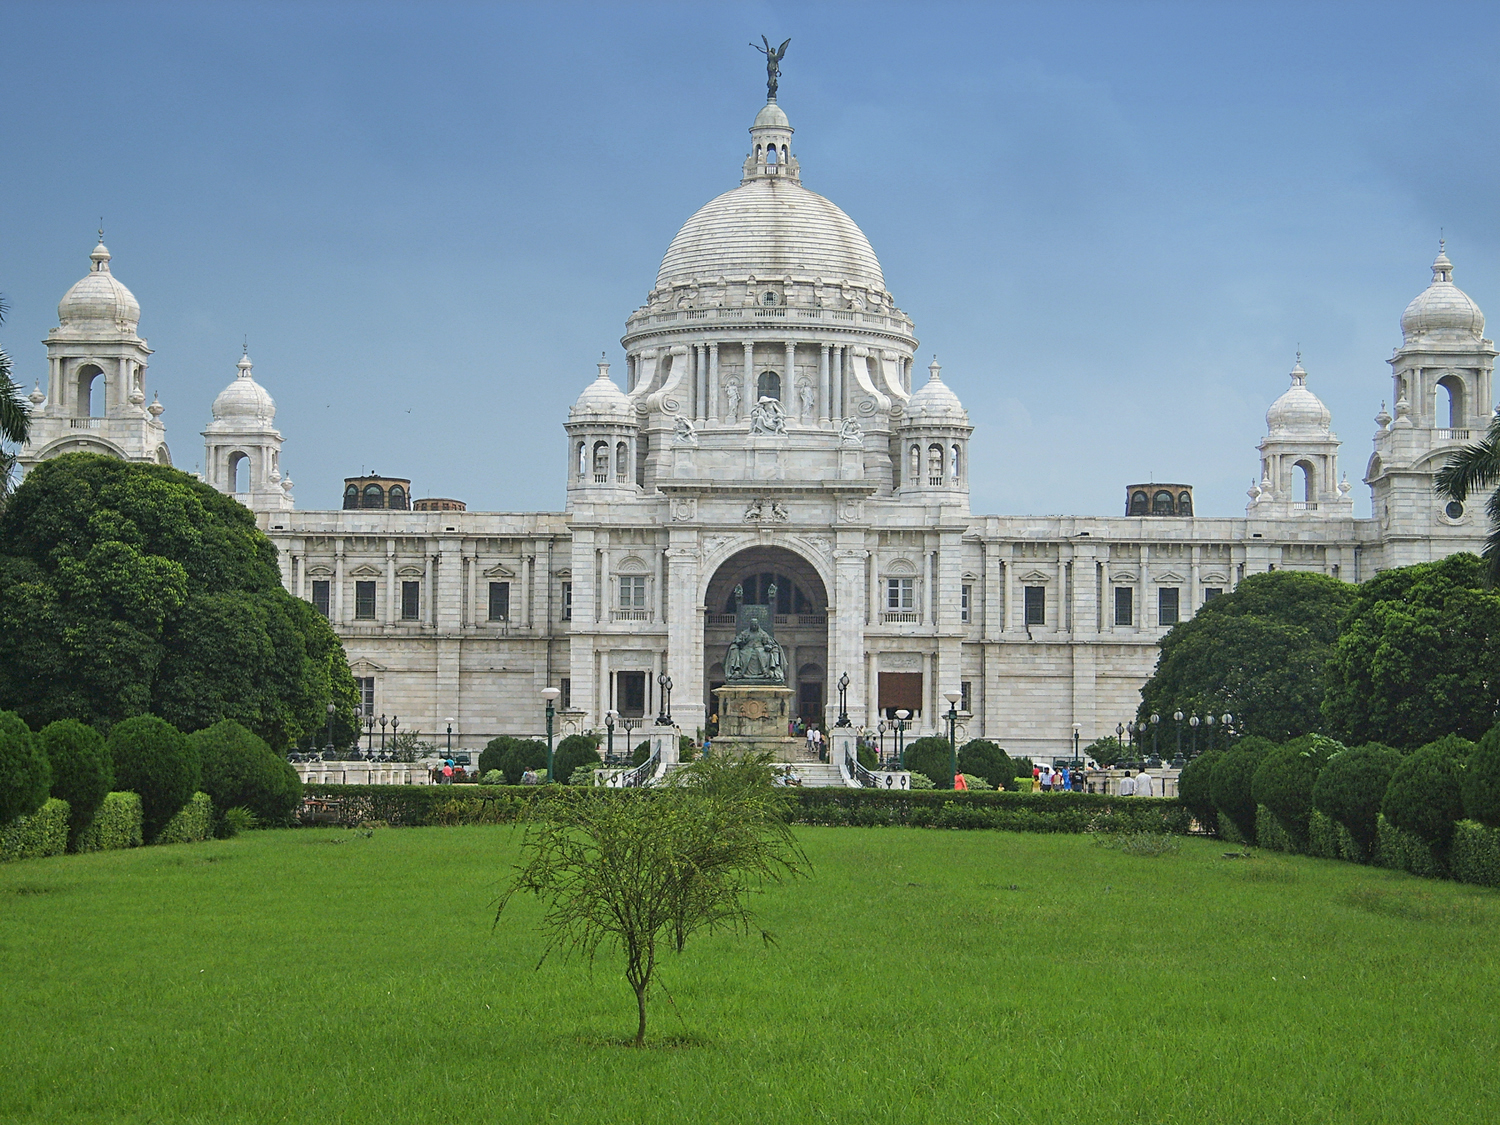 File:Victoria memorial photo by dinesh kapur.jpg - Wikipedia